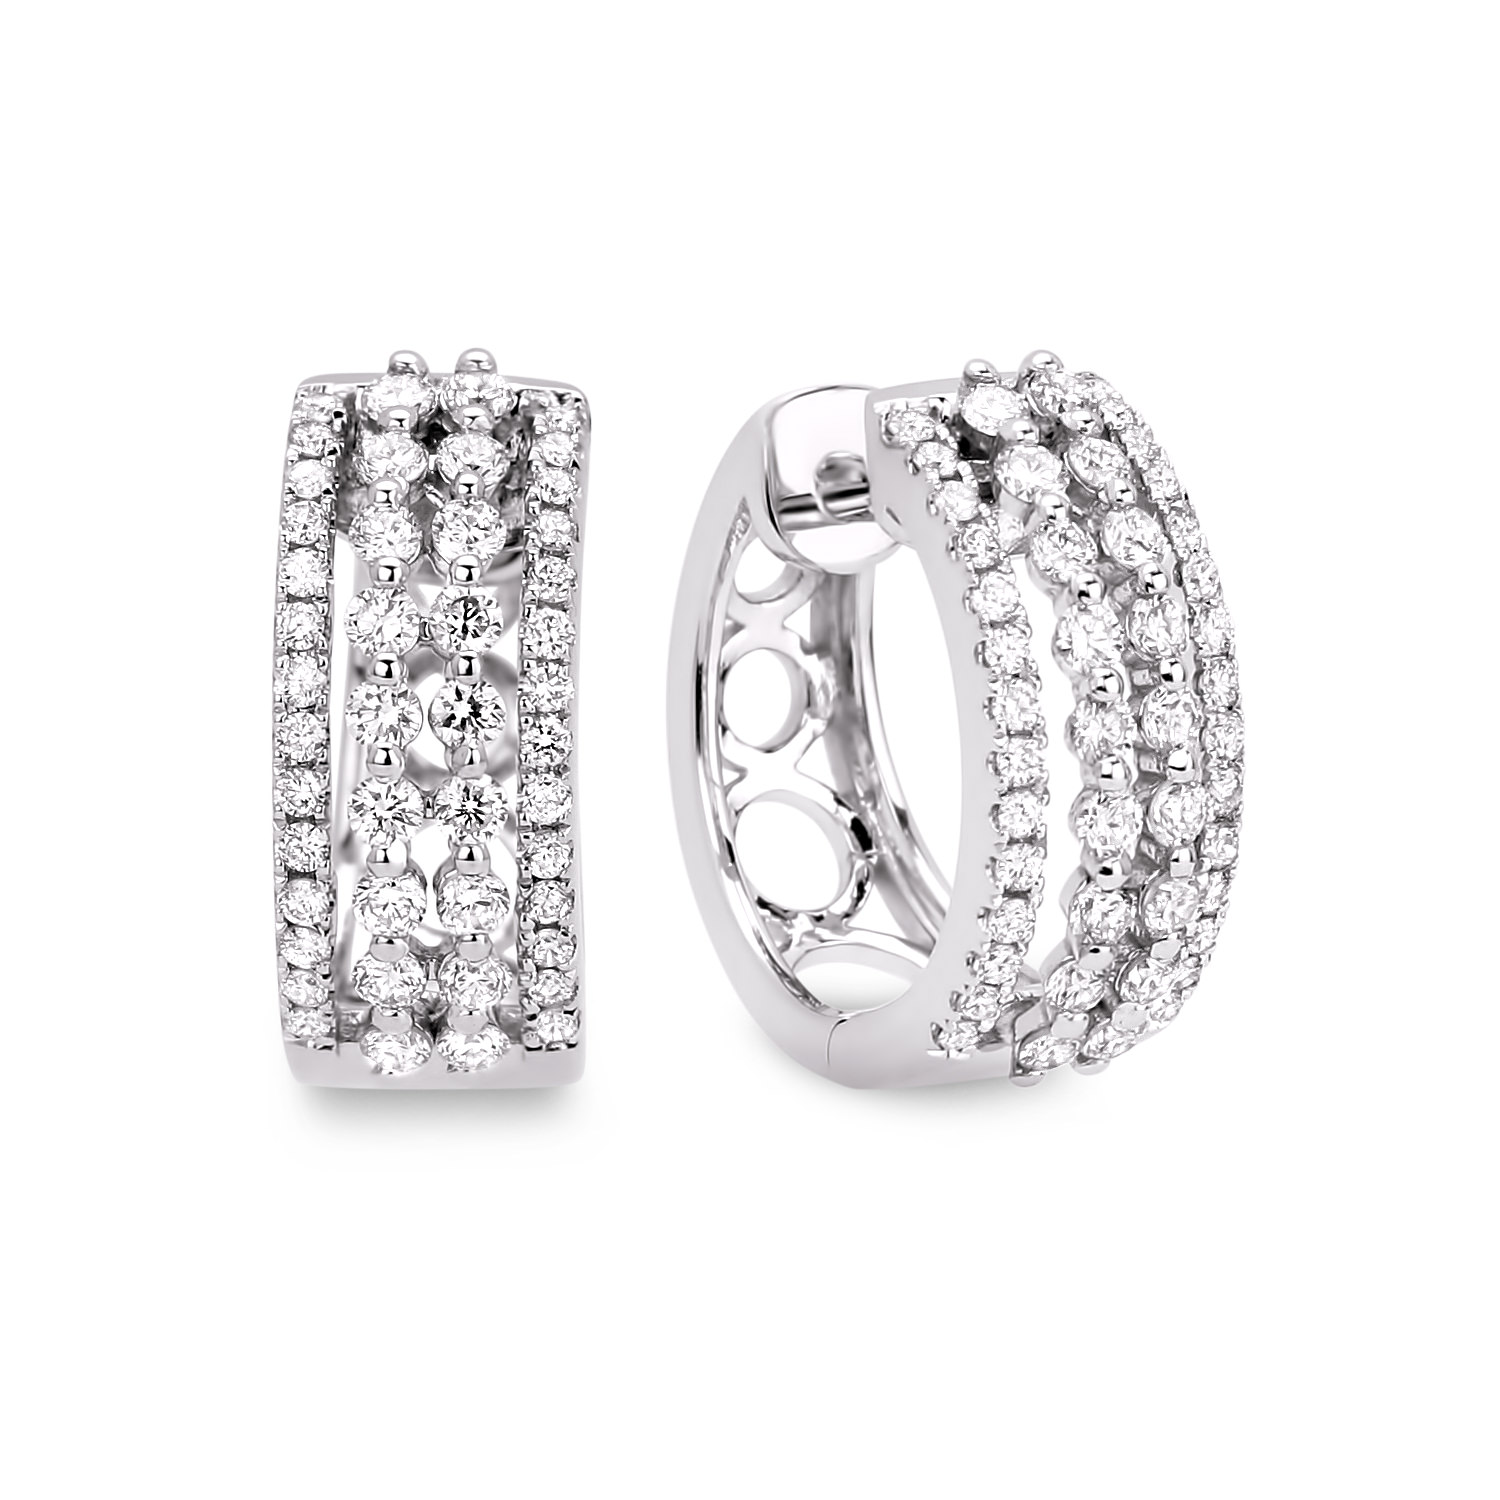 Diamond Hoop Earrings SGE157 (Earrings)